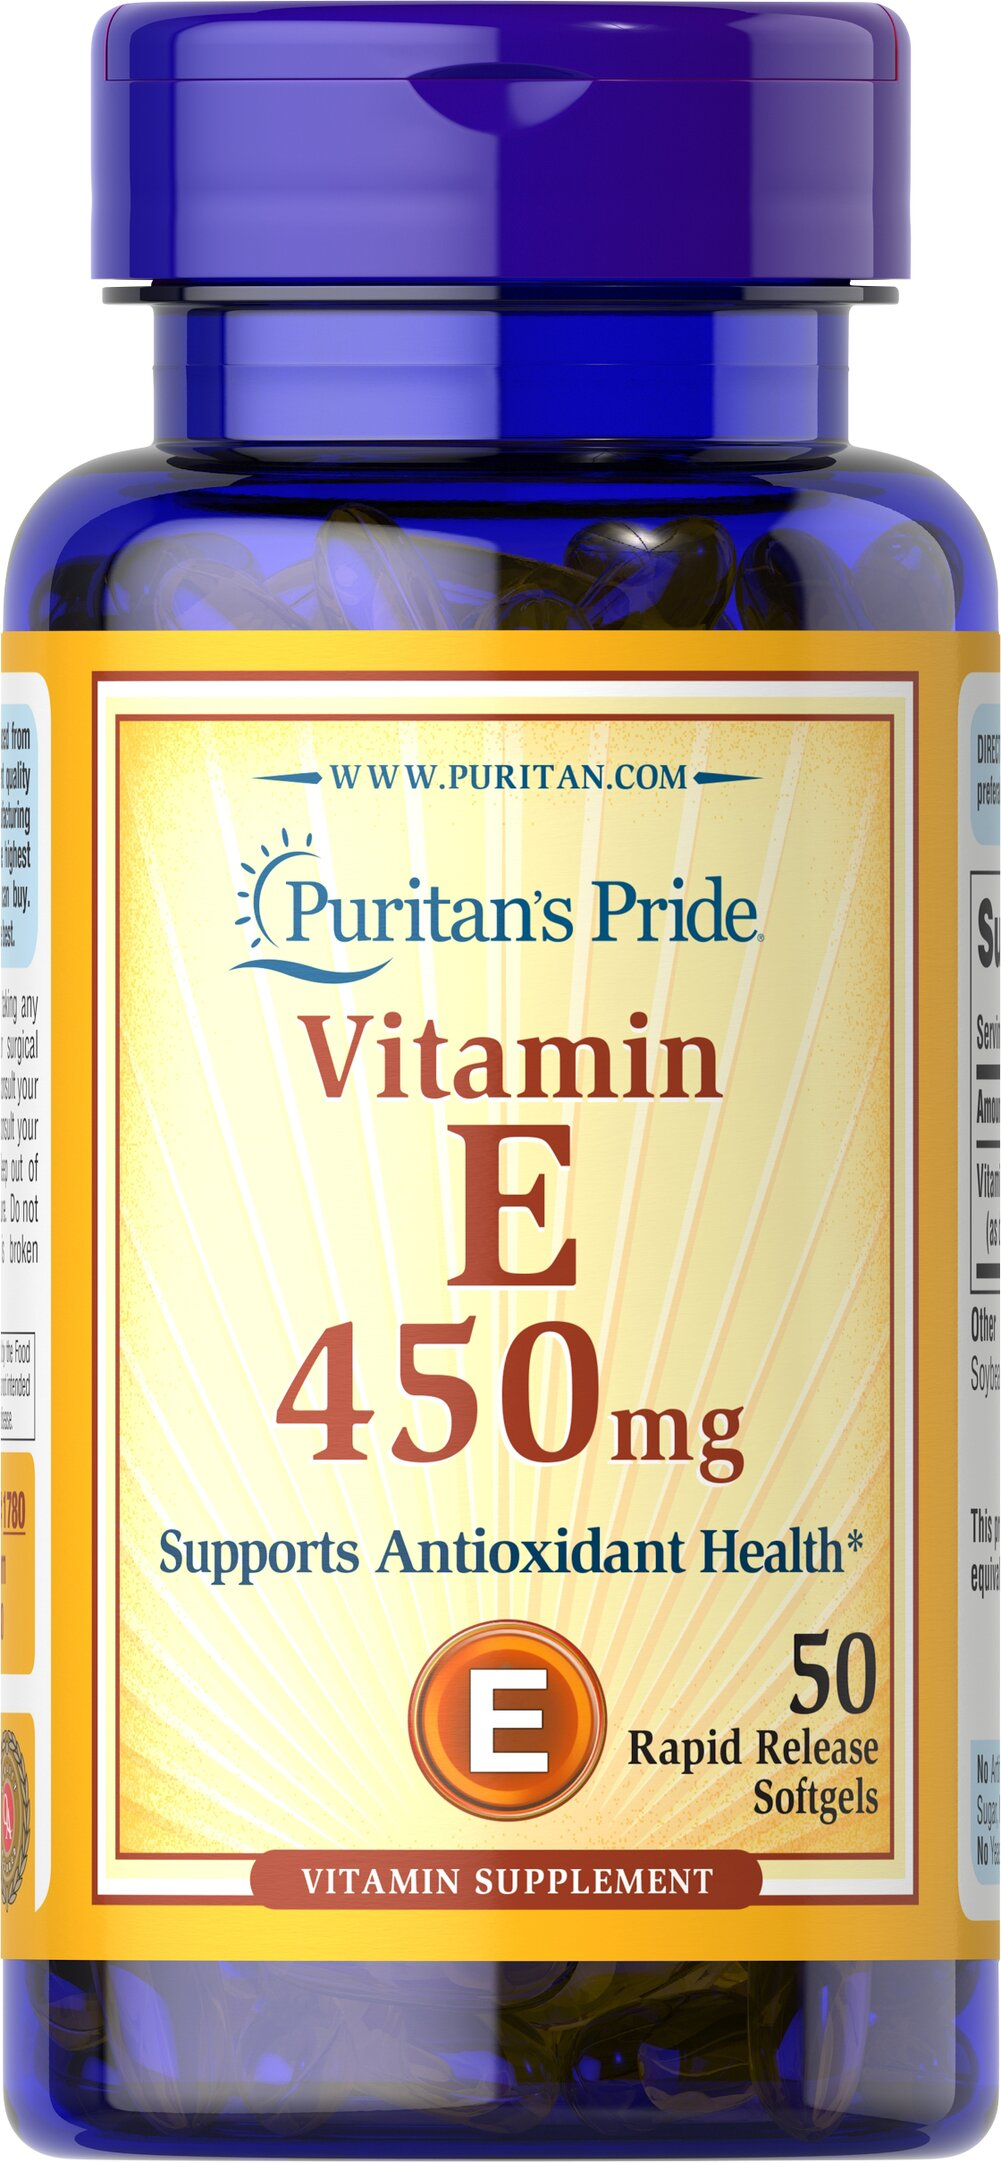 Vitamin E 450 mg Thumbnail Alternate Bottle View